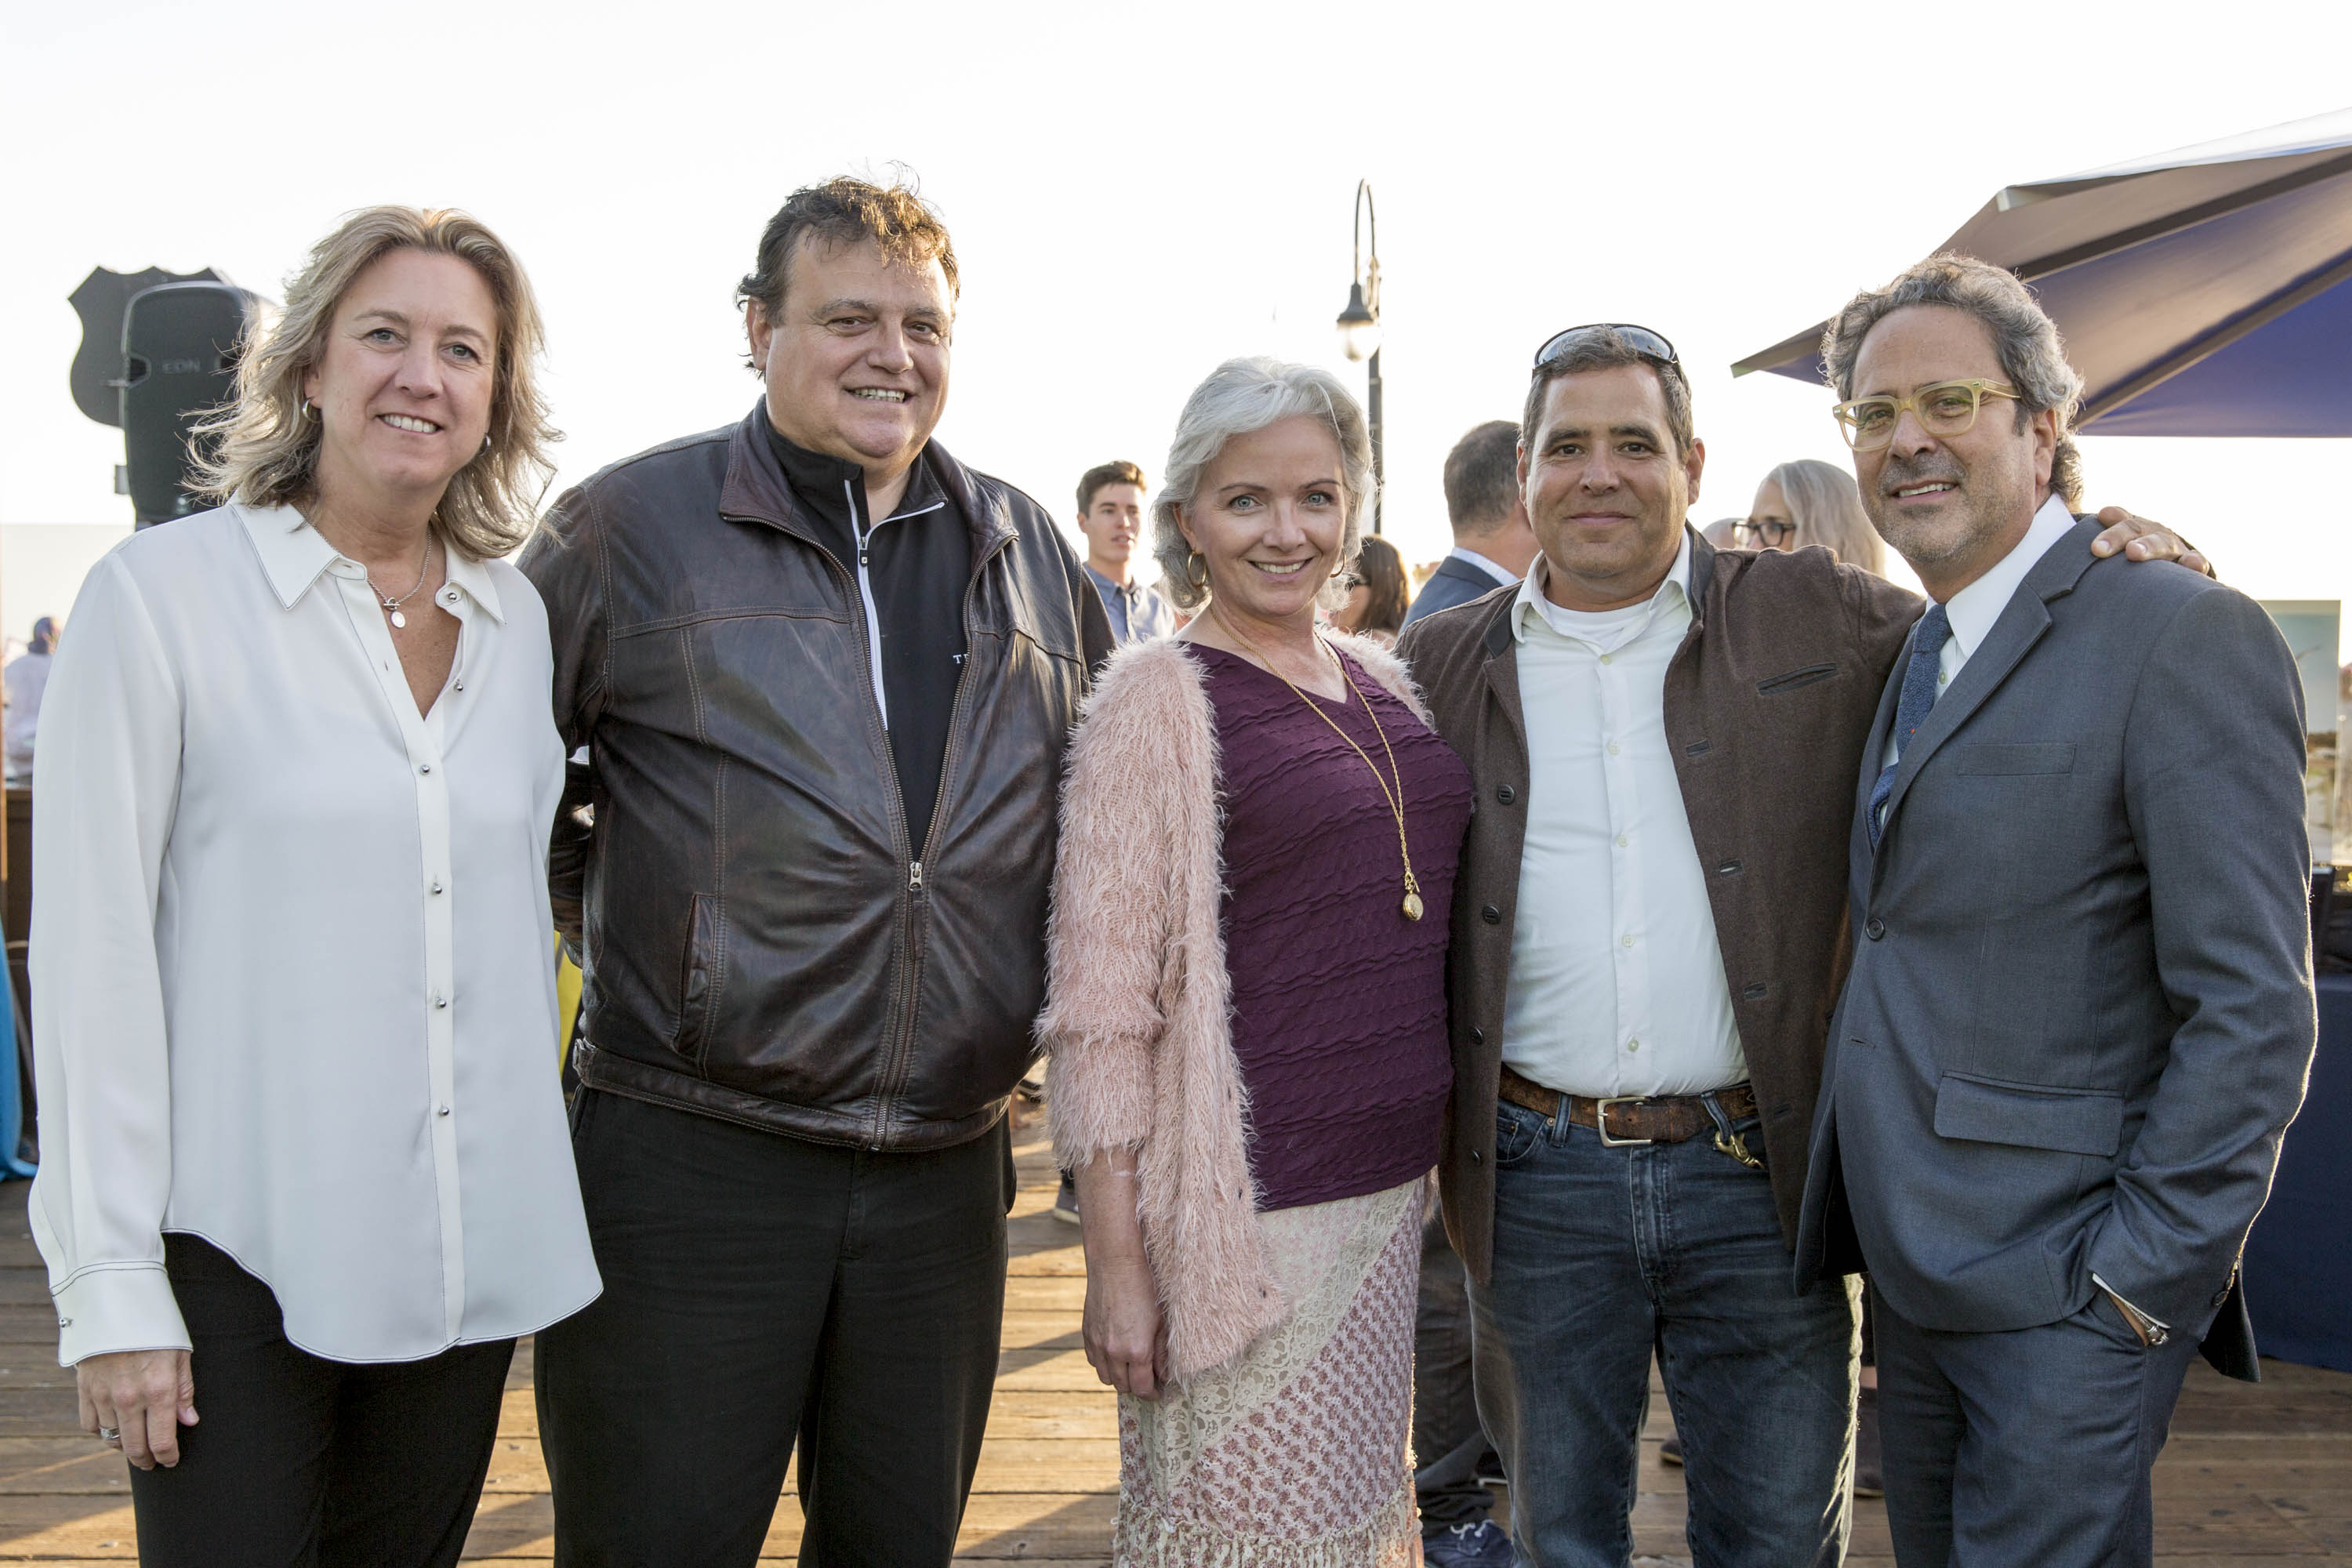 Honorees Leslie Iwerks, Chef Bernard Ibarra, and Beth Ryan with TBF Director Tom Ford, Assemblymember Richard Bloom